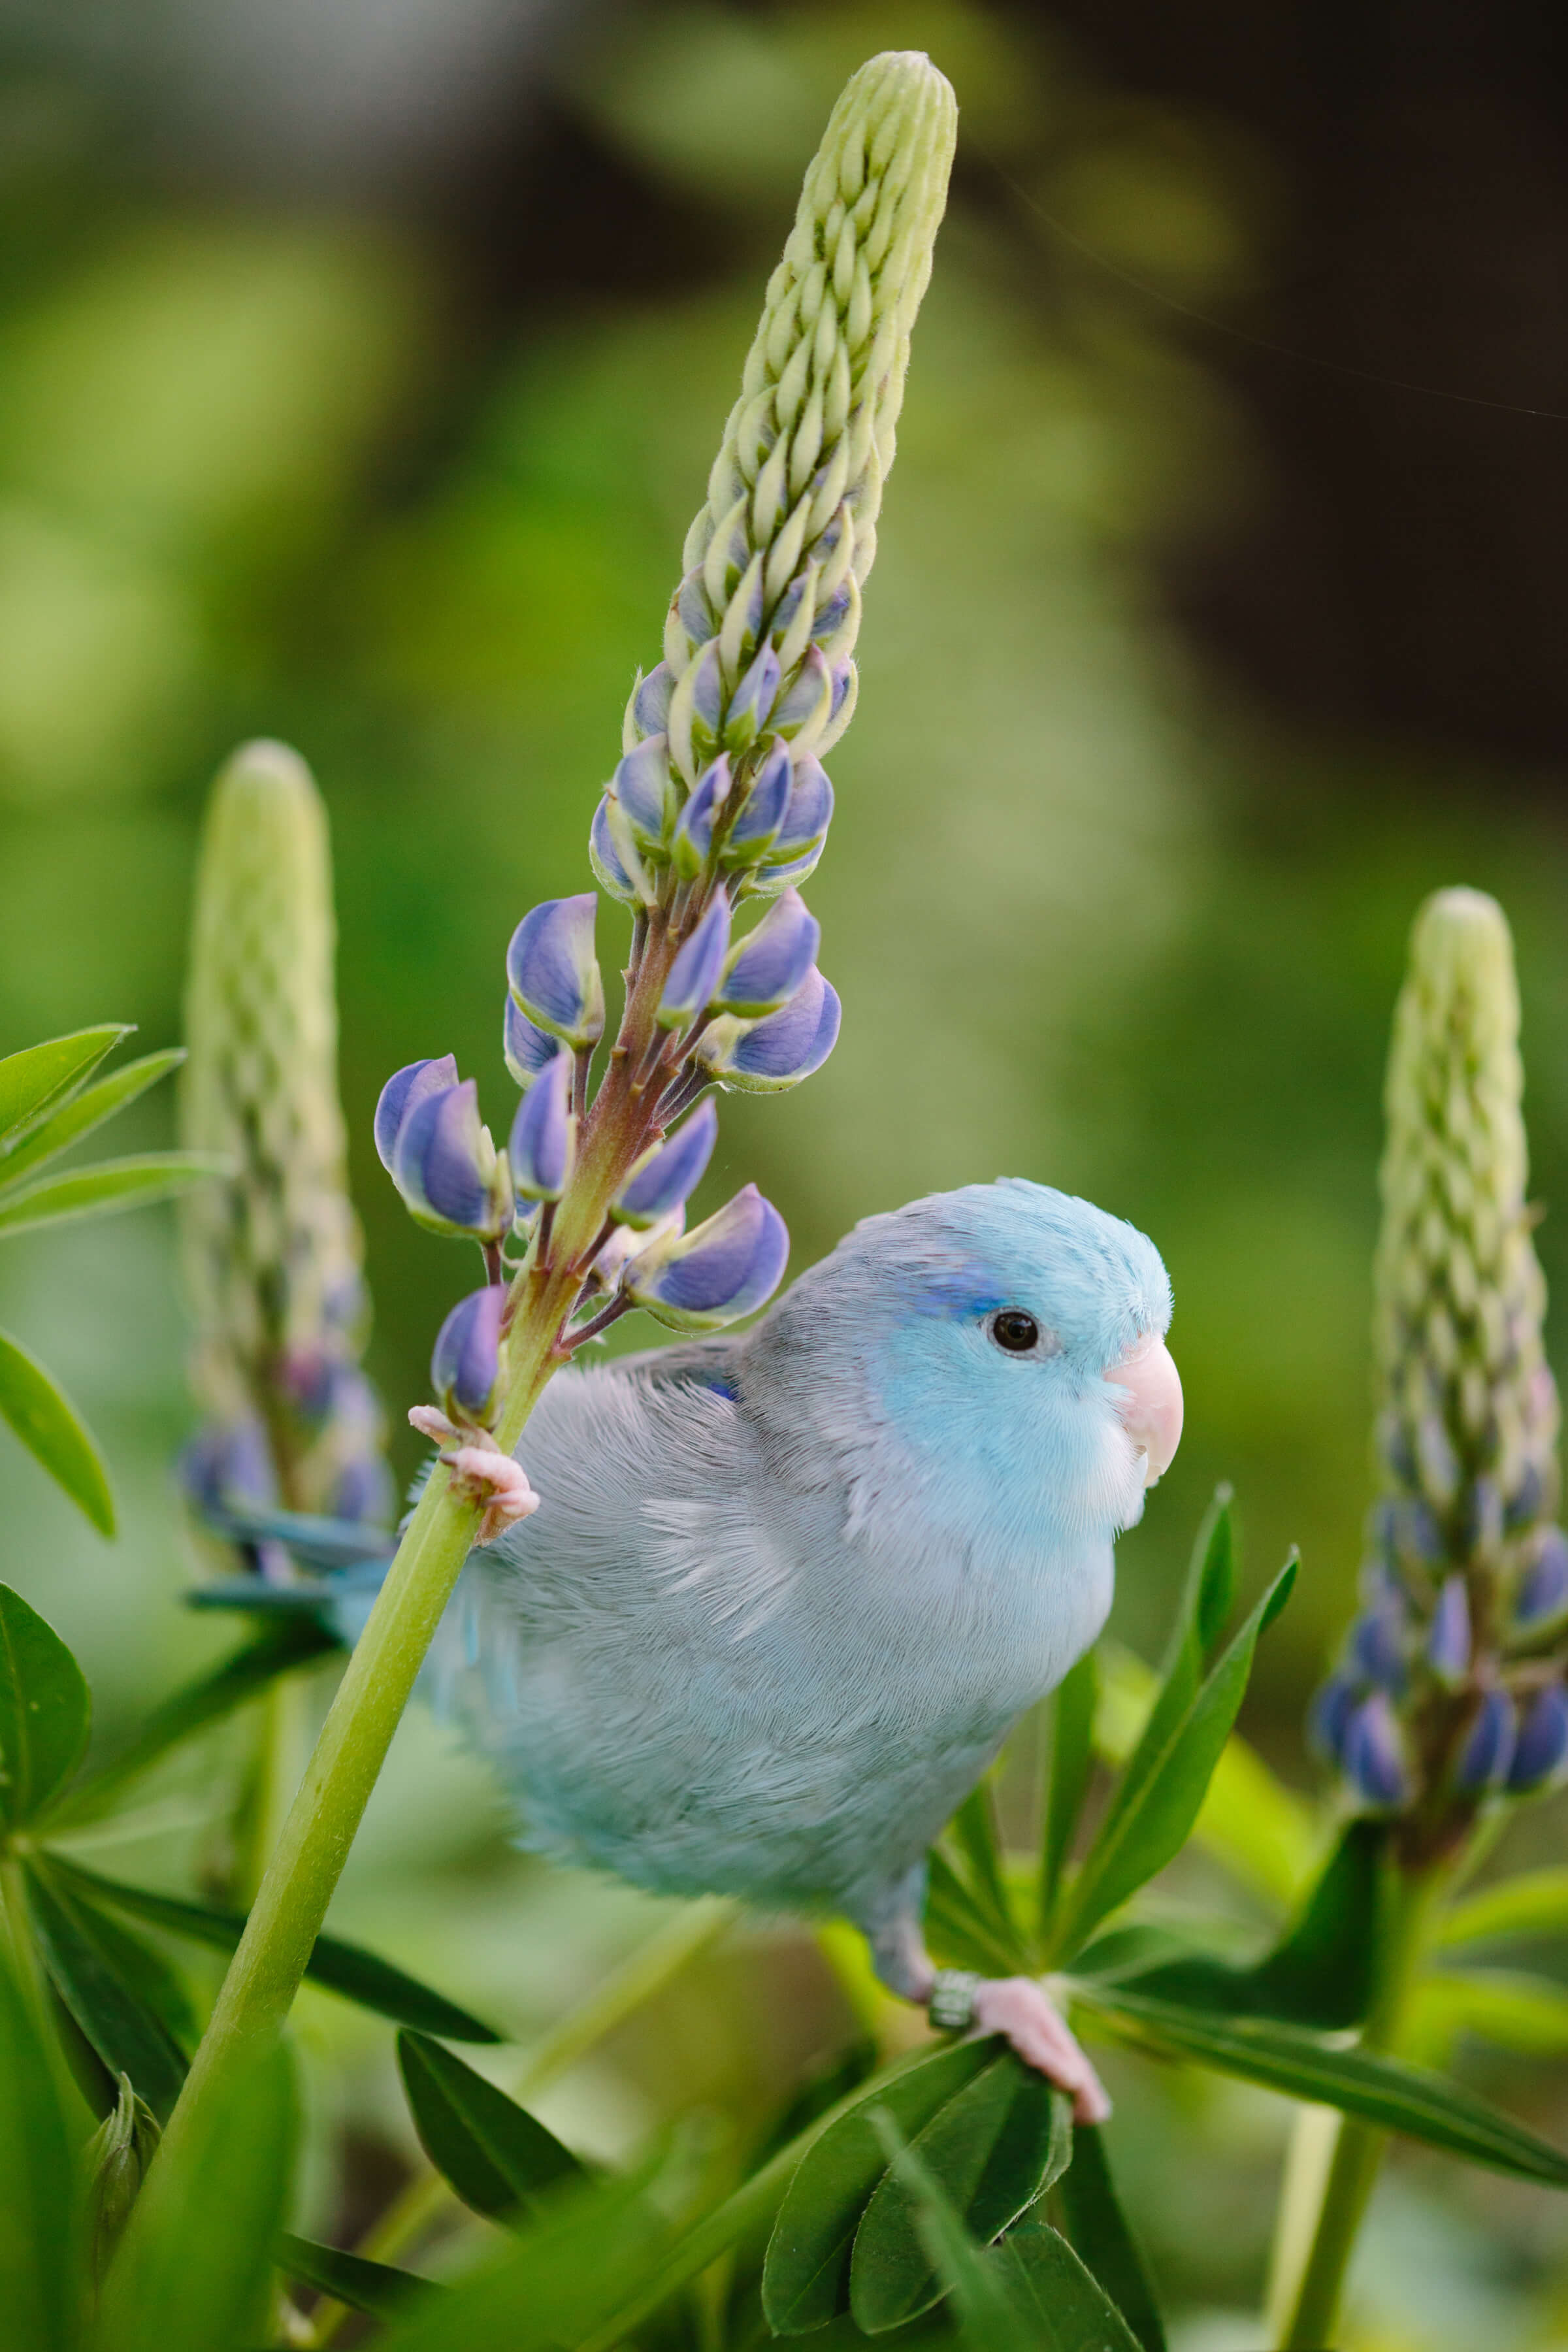 Flash the parrotlet does the splits while holding onto lupine flowers